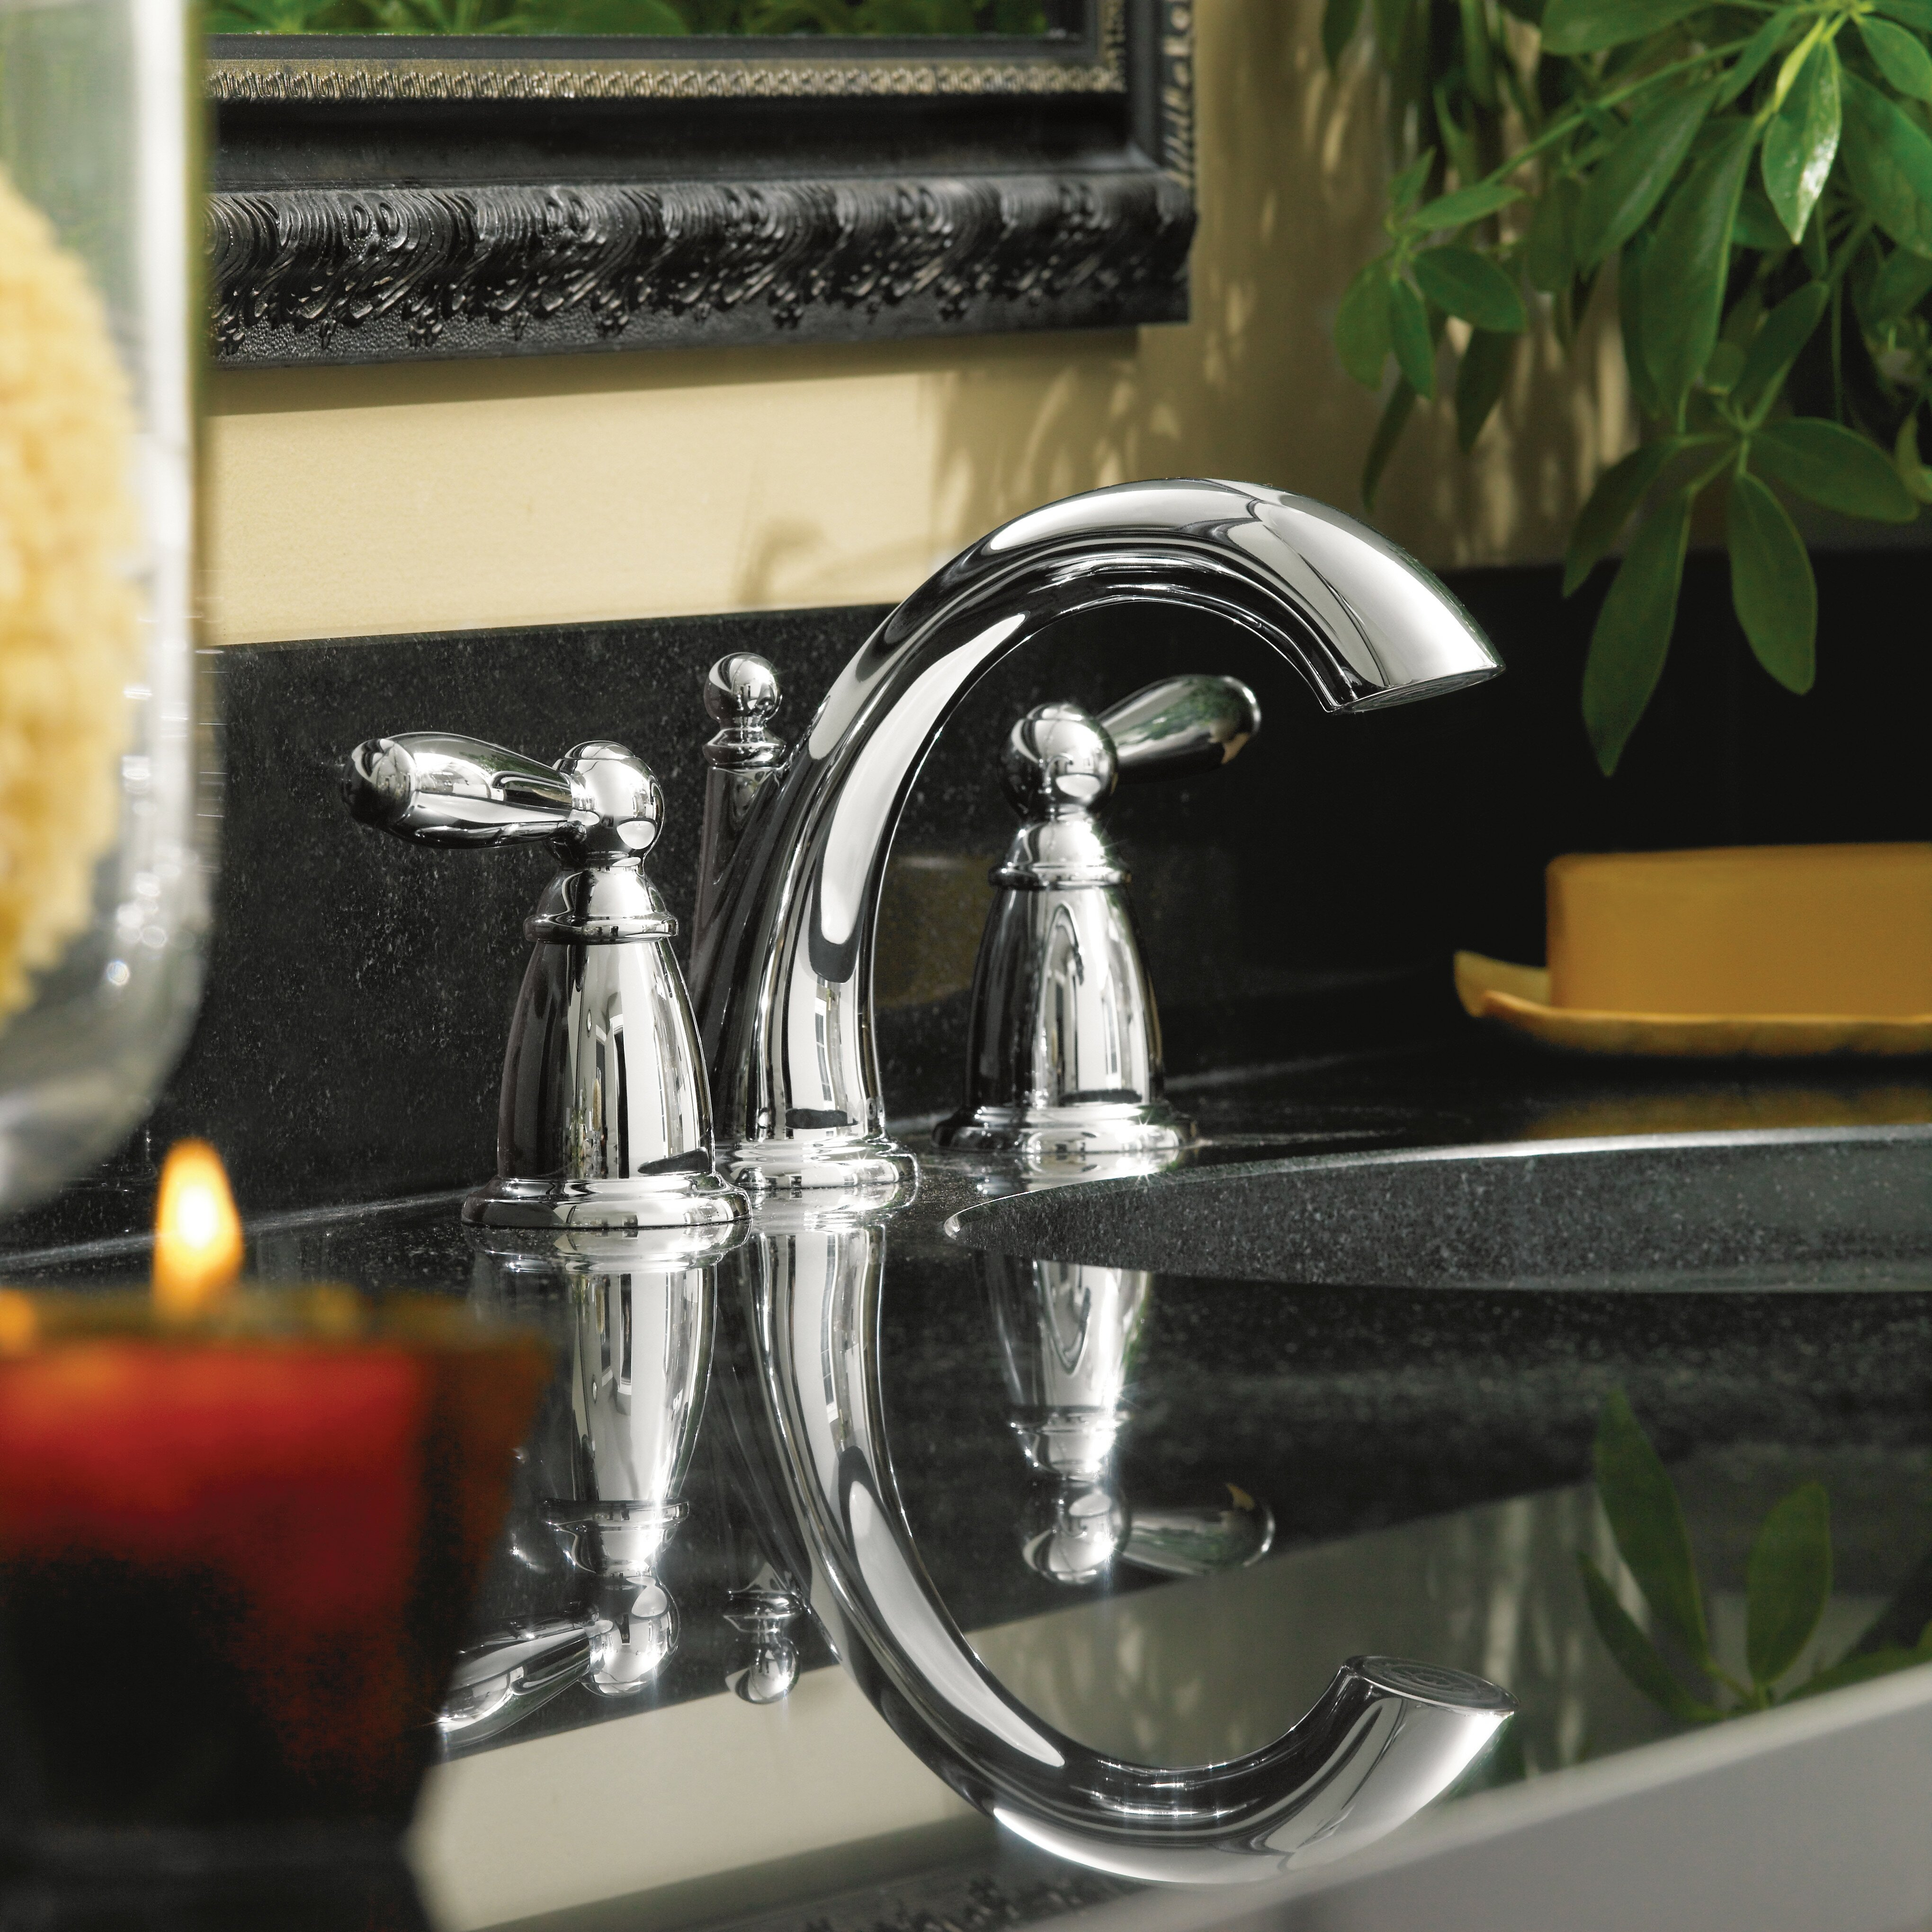 Moen Brantford Double Handle Widespread Standard Bathroom Faucet with Drain Assembly